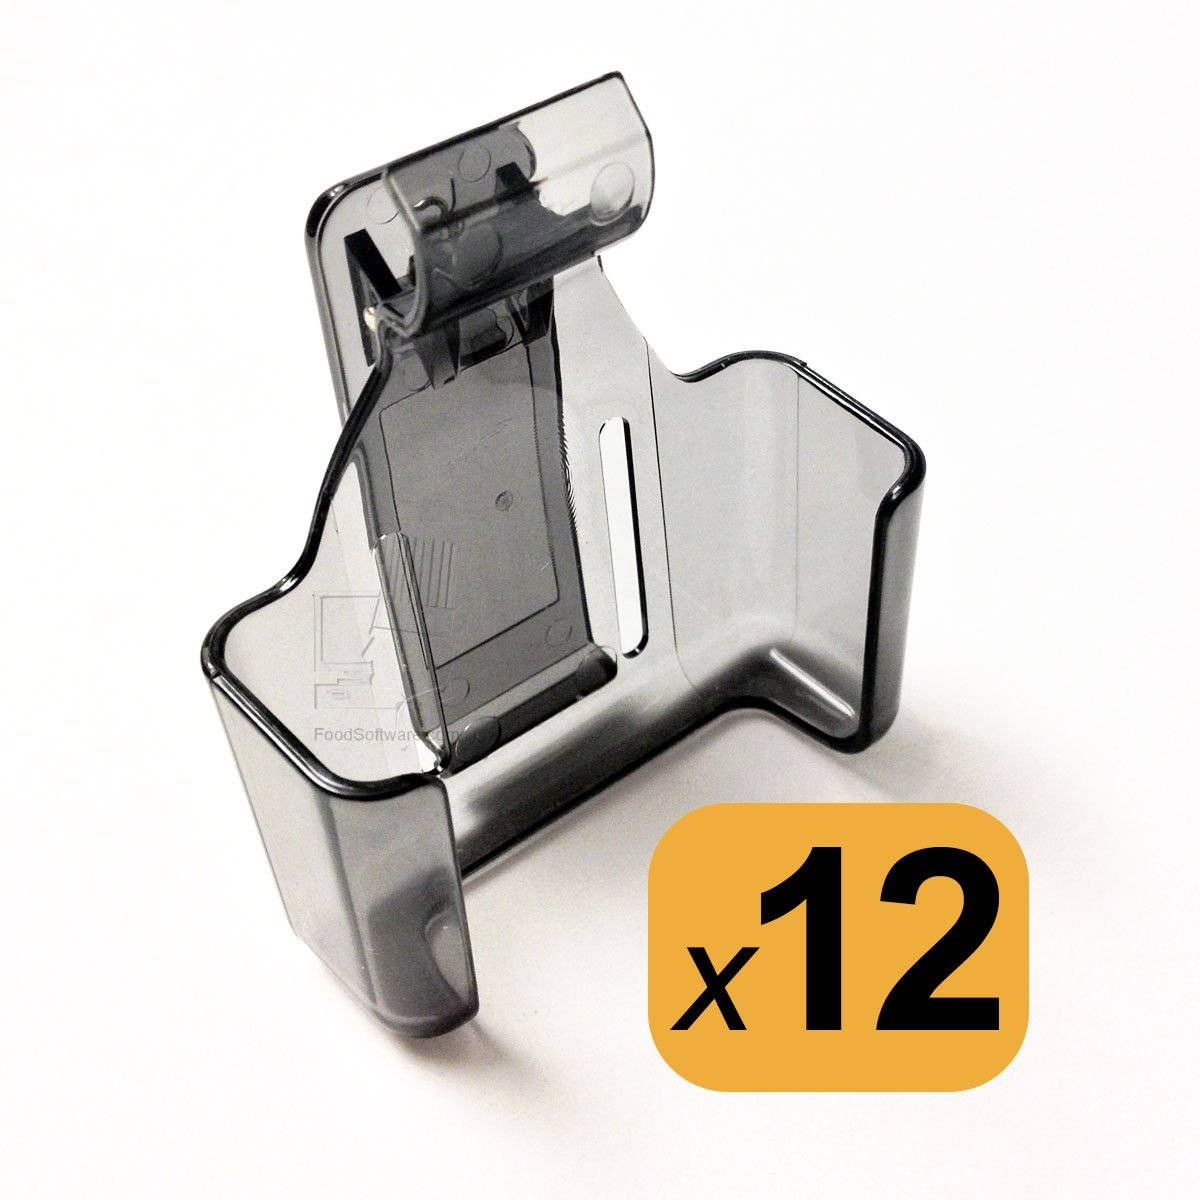 Pager Cradle Belt Clips for LRS Star SP4 Server Pagers (1 dozen) by FoodSoftware